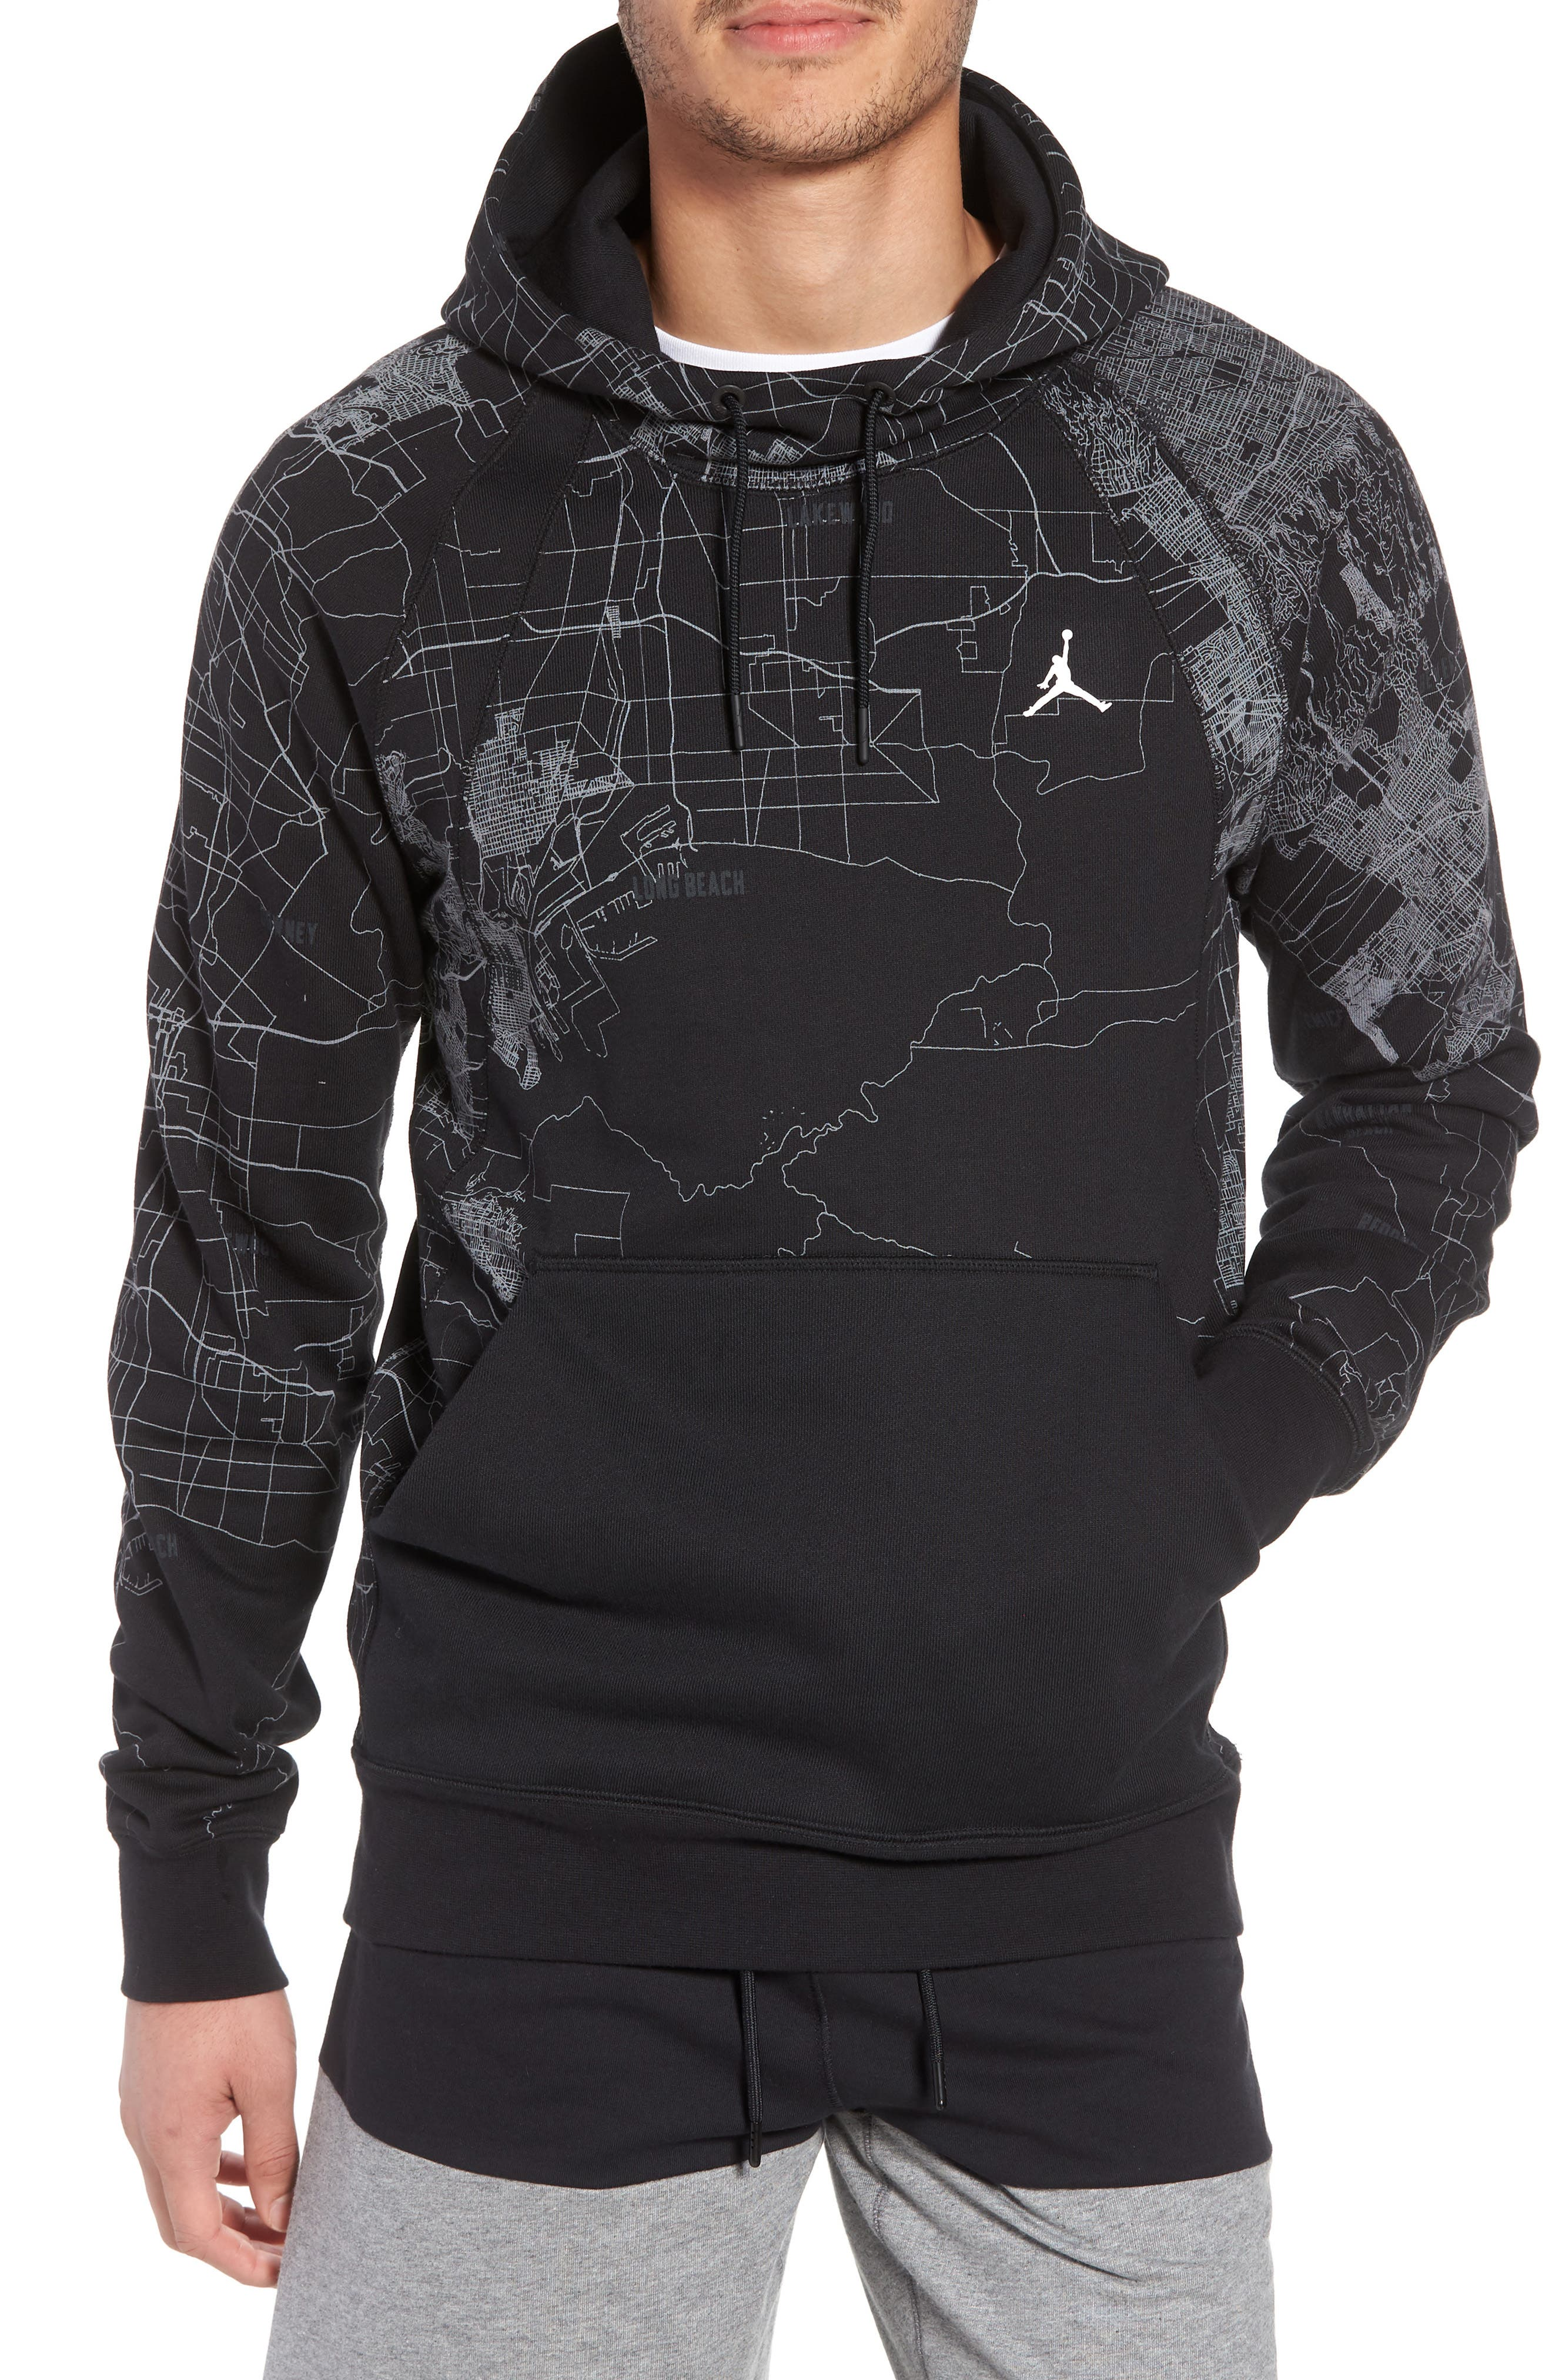 Wings Graphic Hoodie,                         Main,                         color, Black/ White